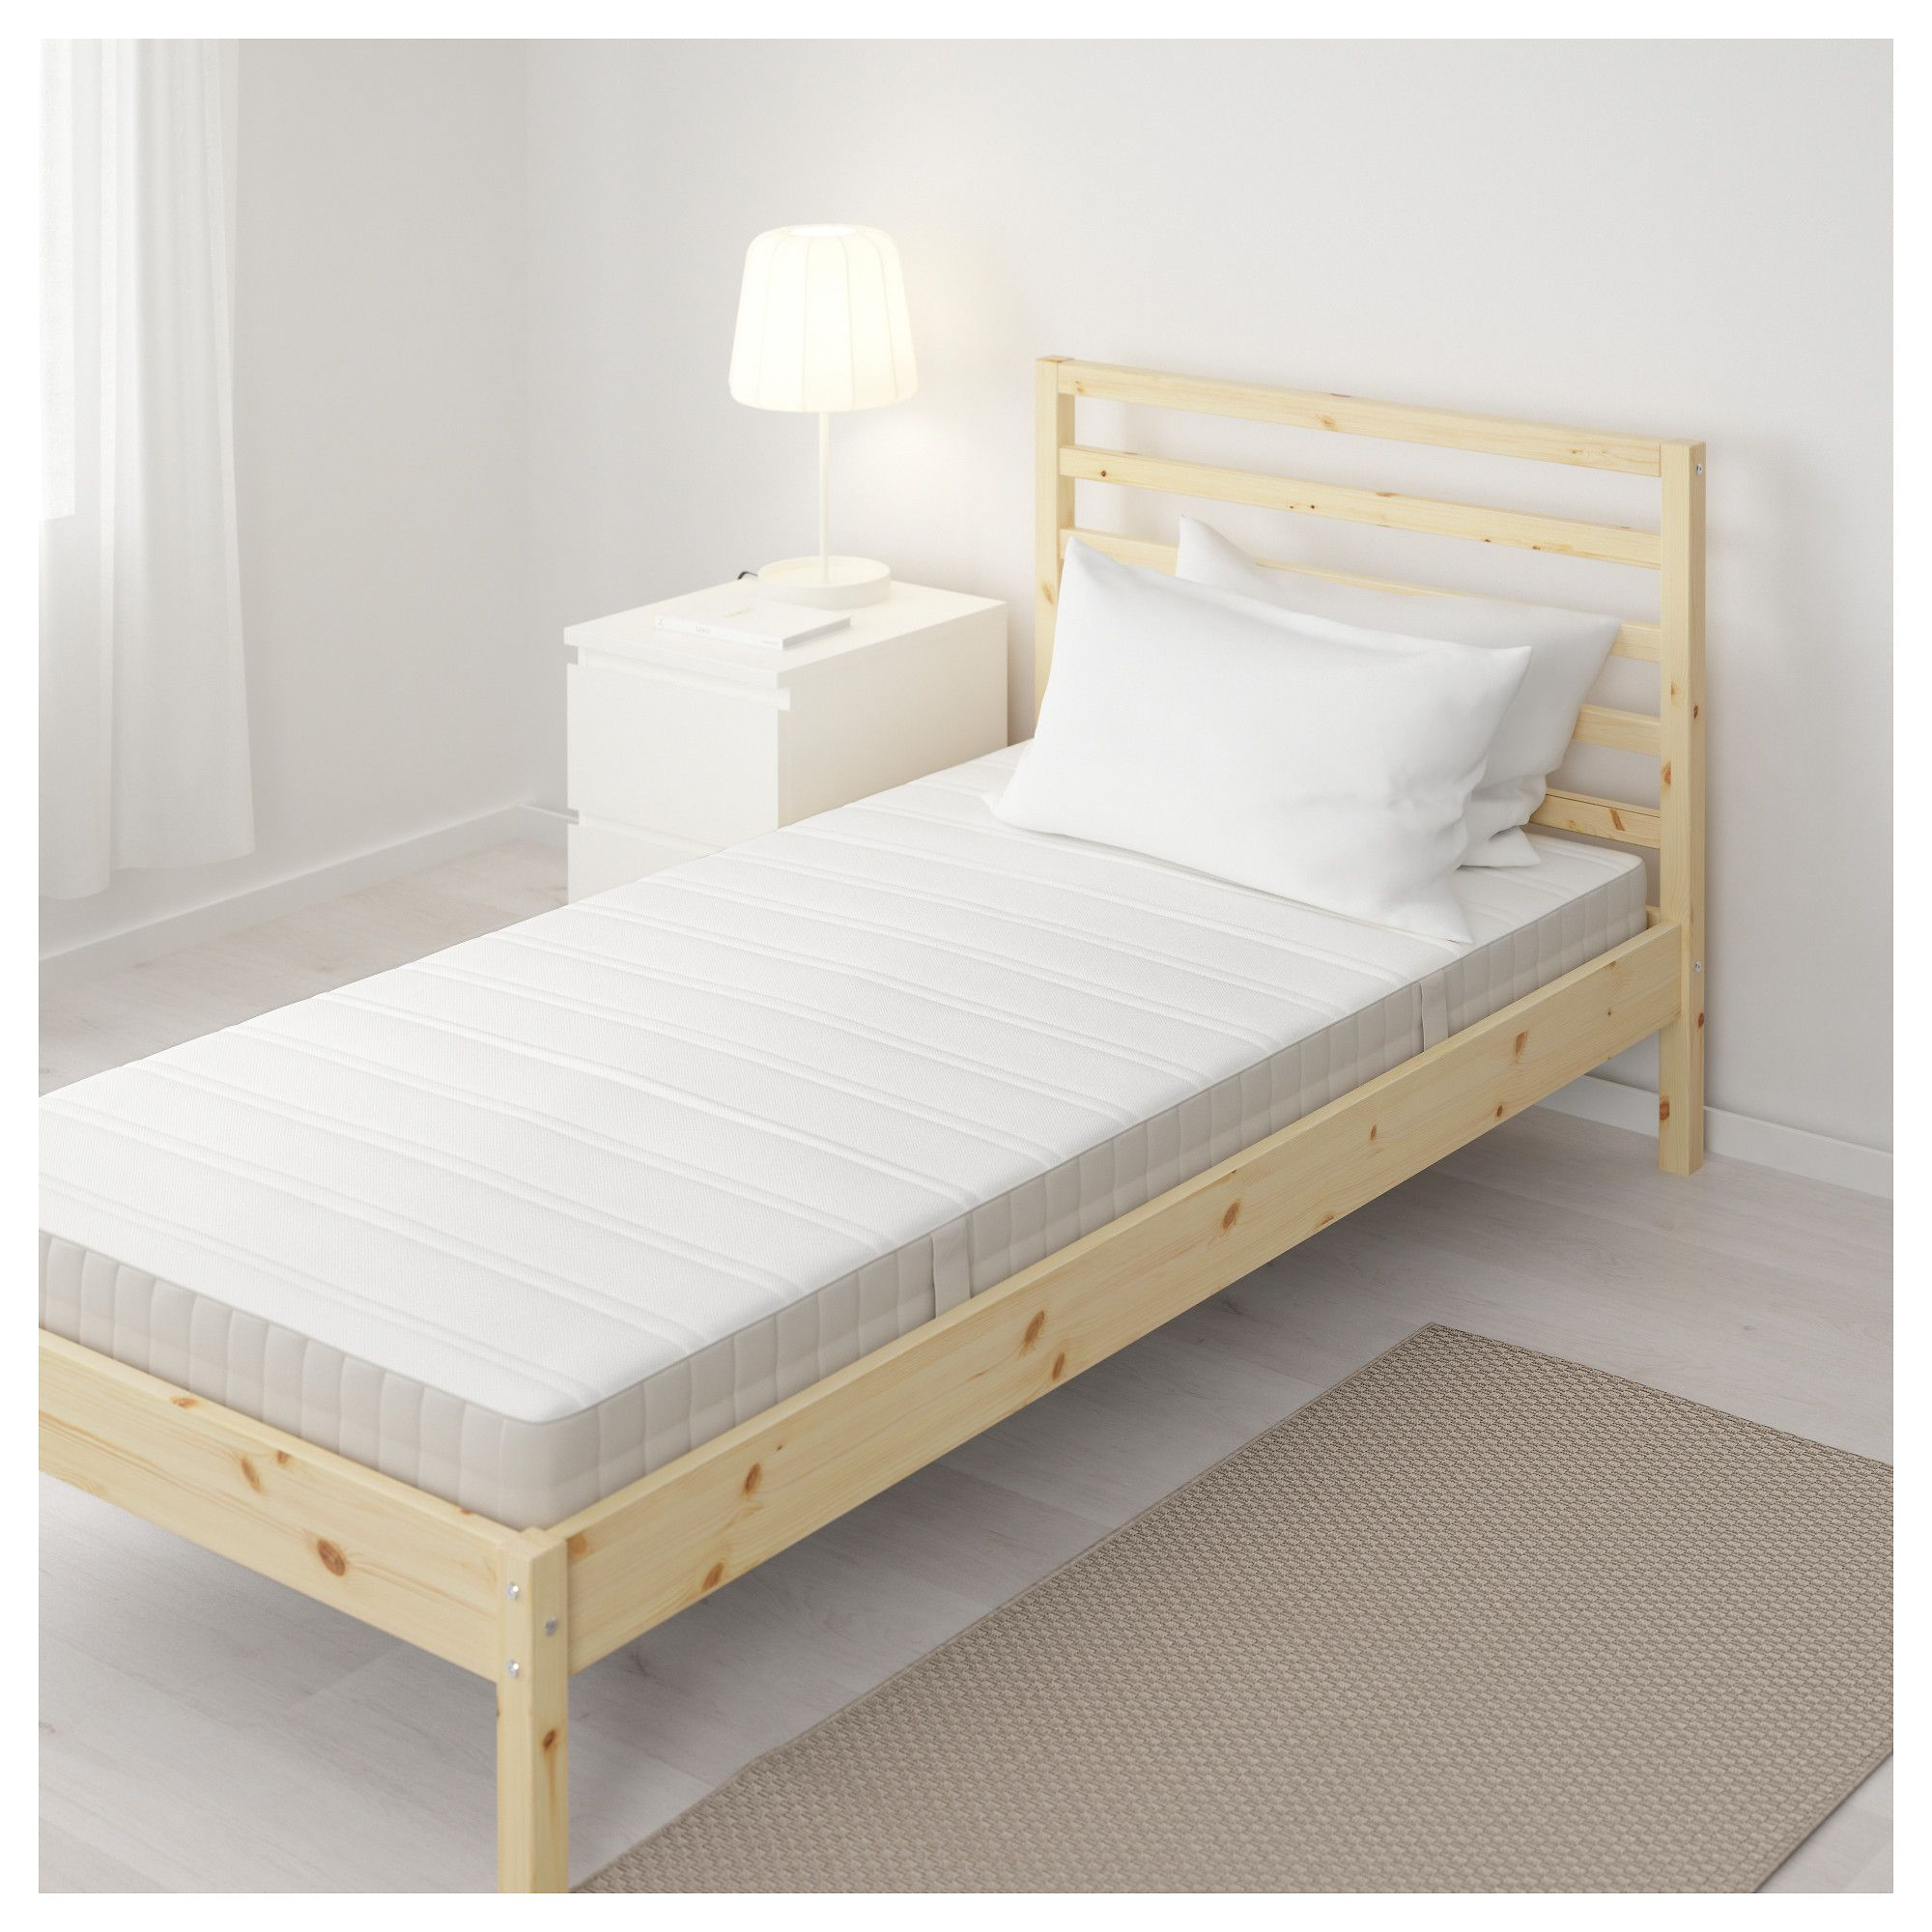 are foam mattress trusty with and tarva for twin important bed pad your decor cool frame